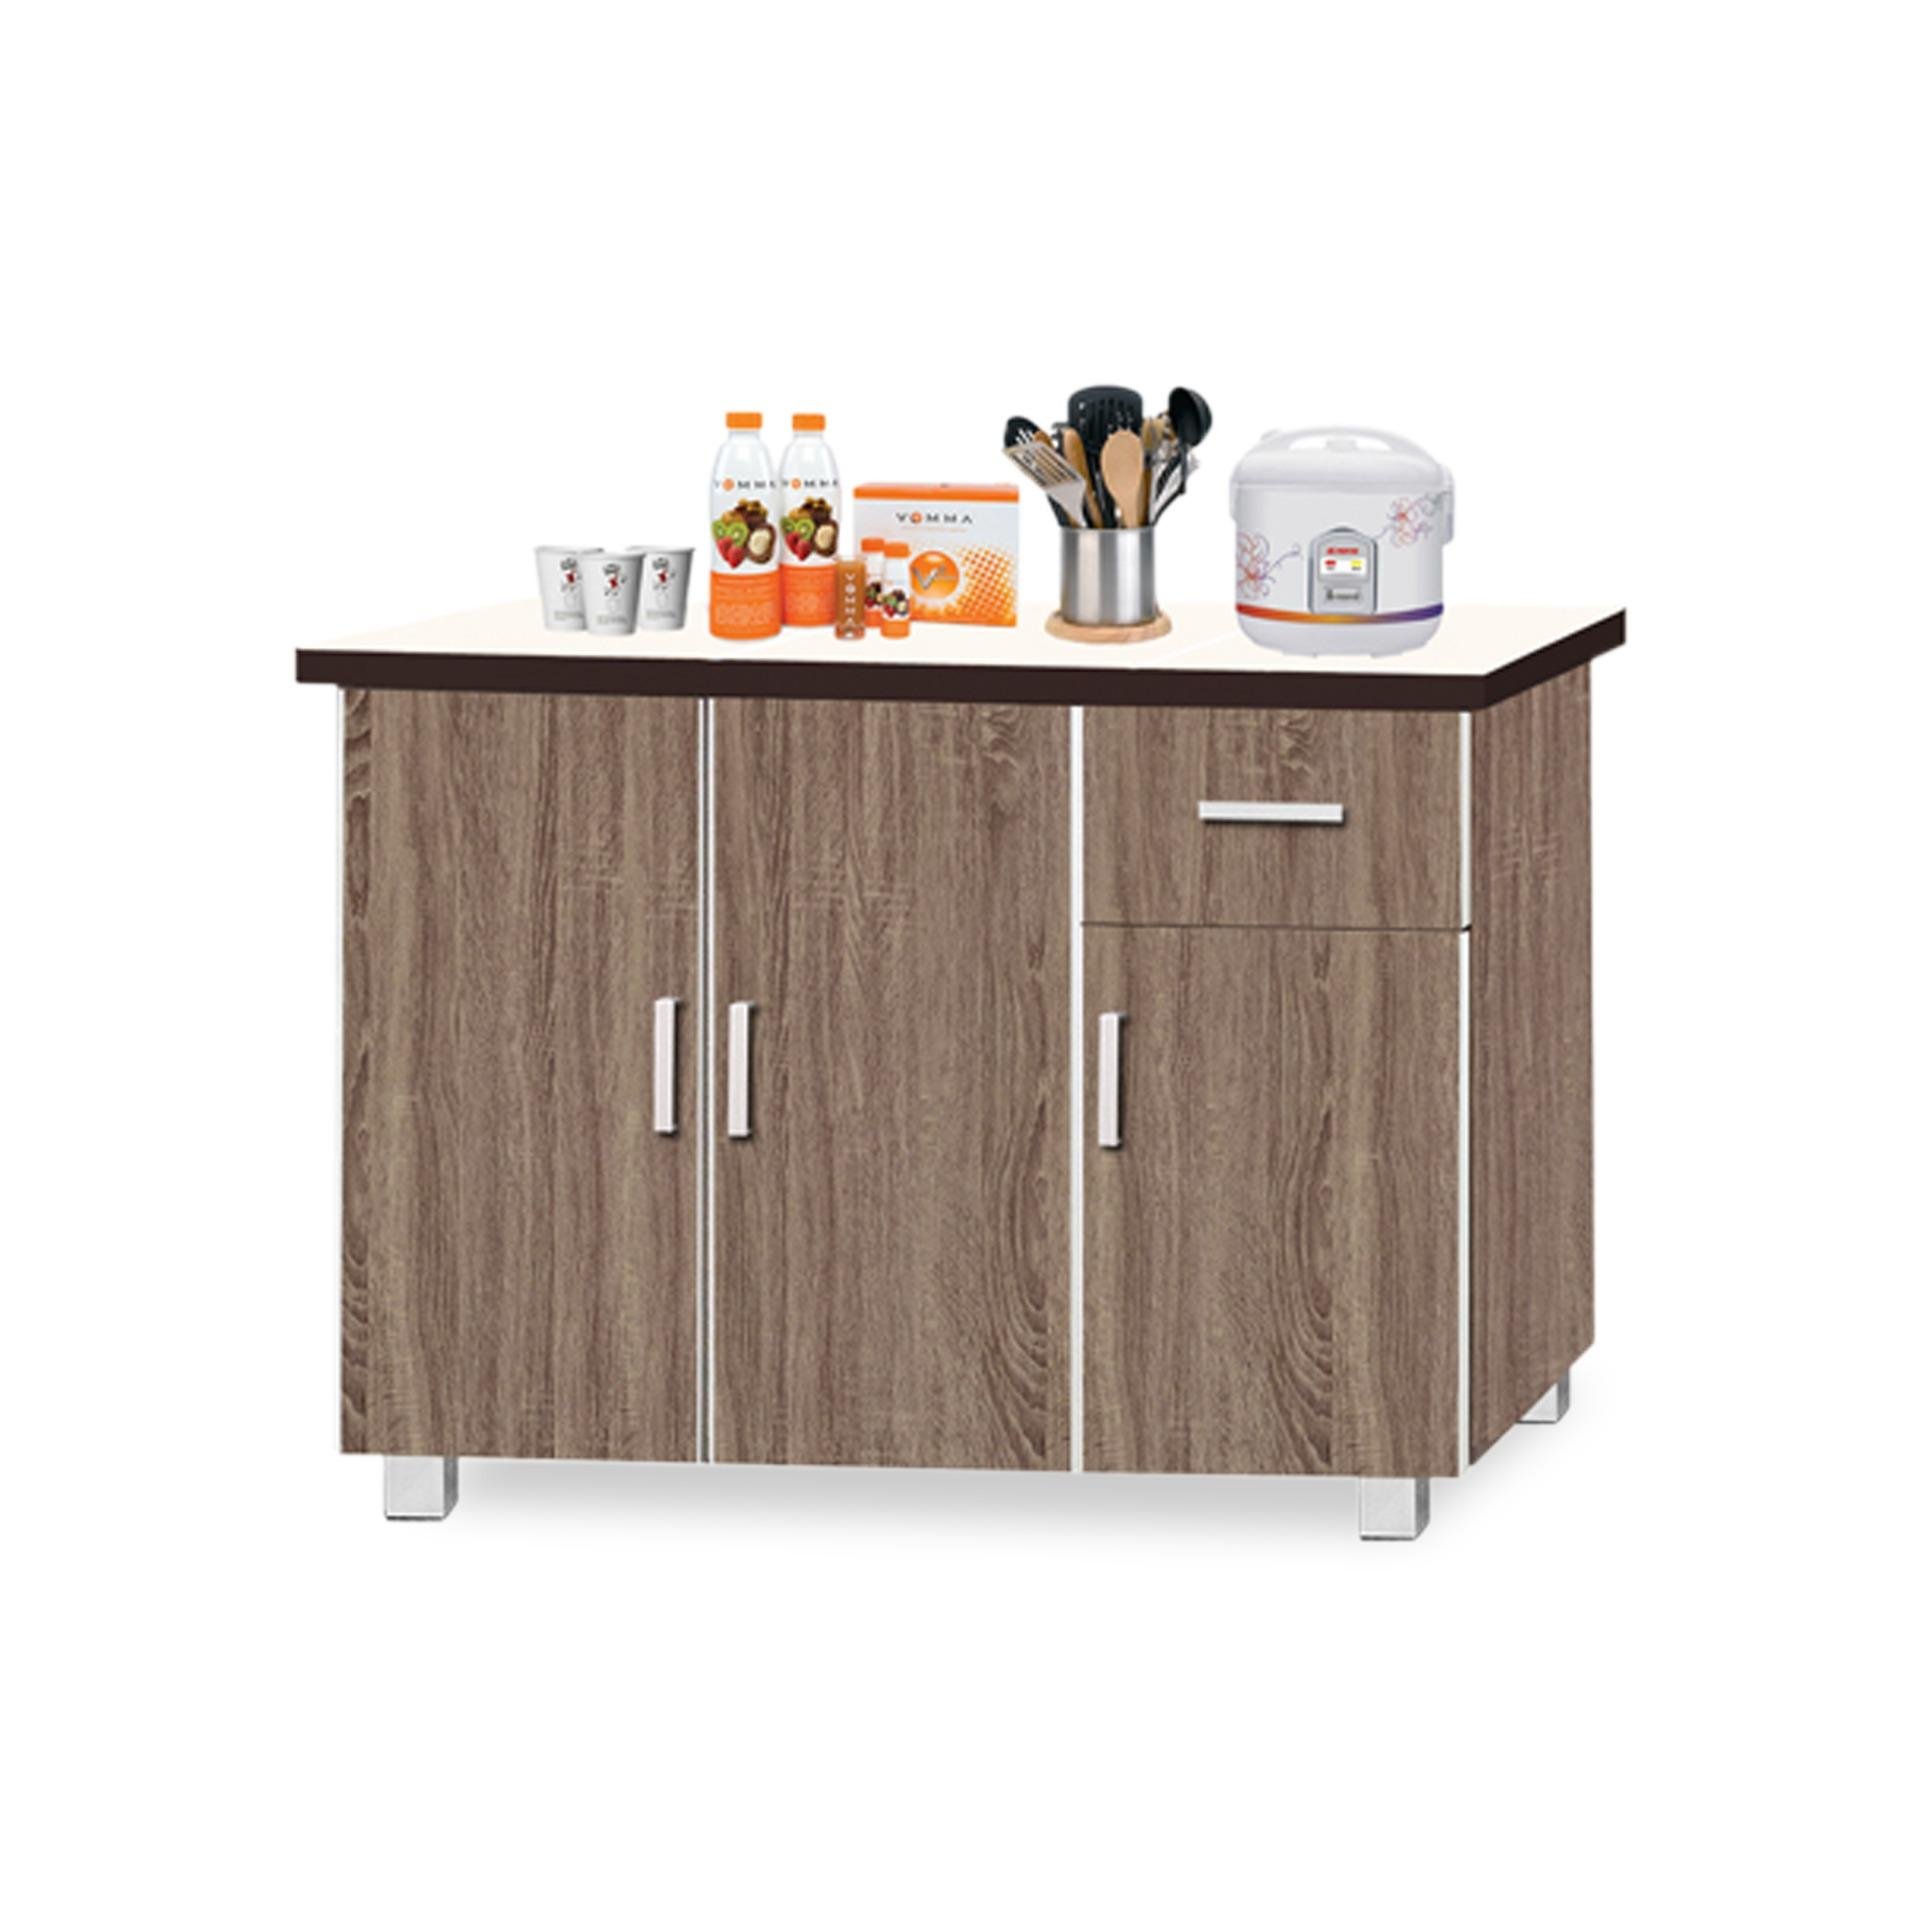 Hugo Dining Cabinet (FREE DELIVERY)(FREE ASSEMBLY)